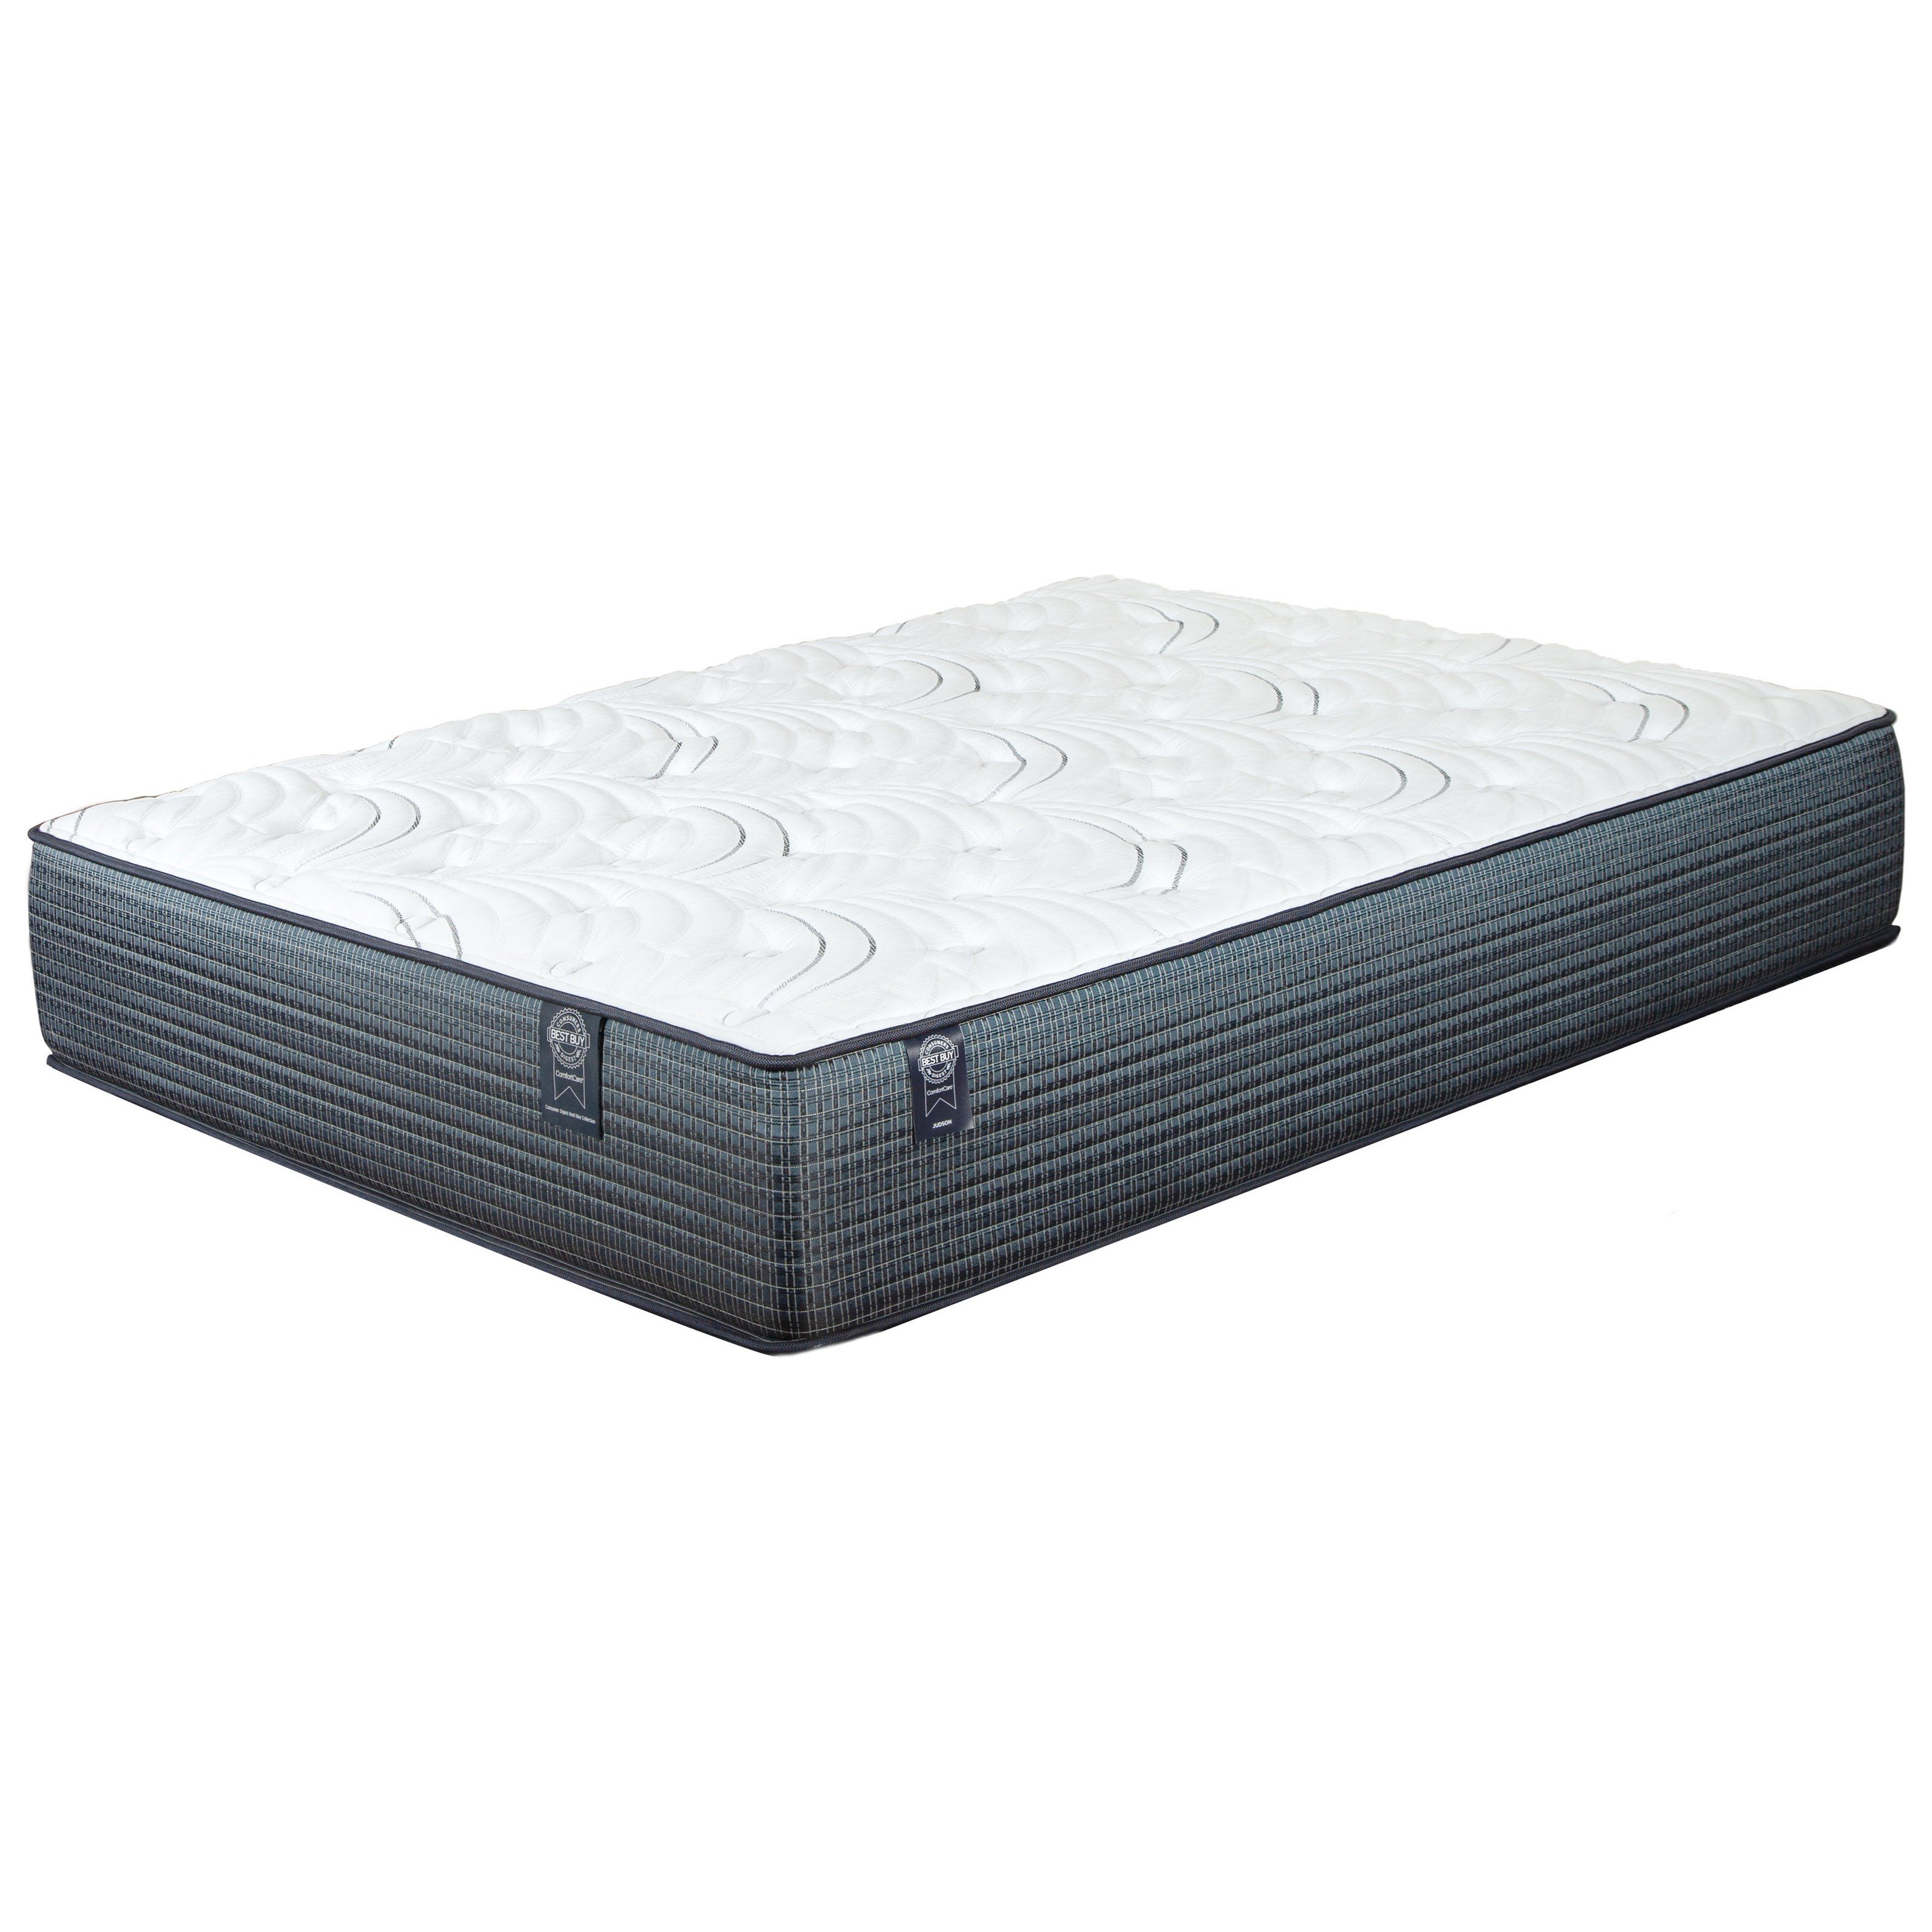 Savannah Plush Twin XL Plush Mattress by Restonic at H.L. Stephens